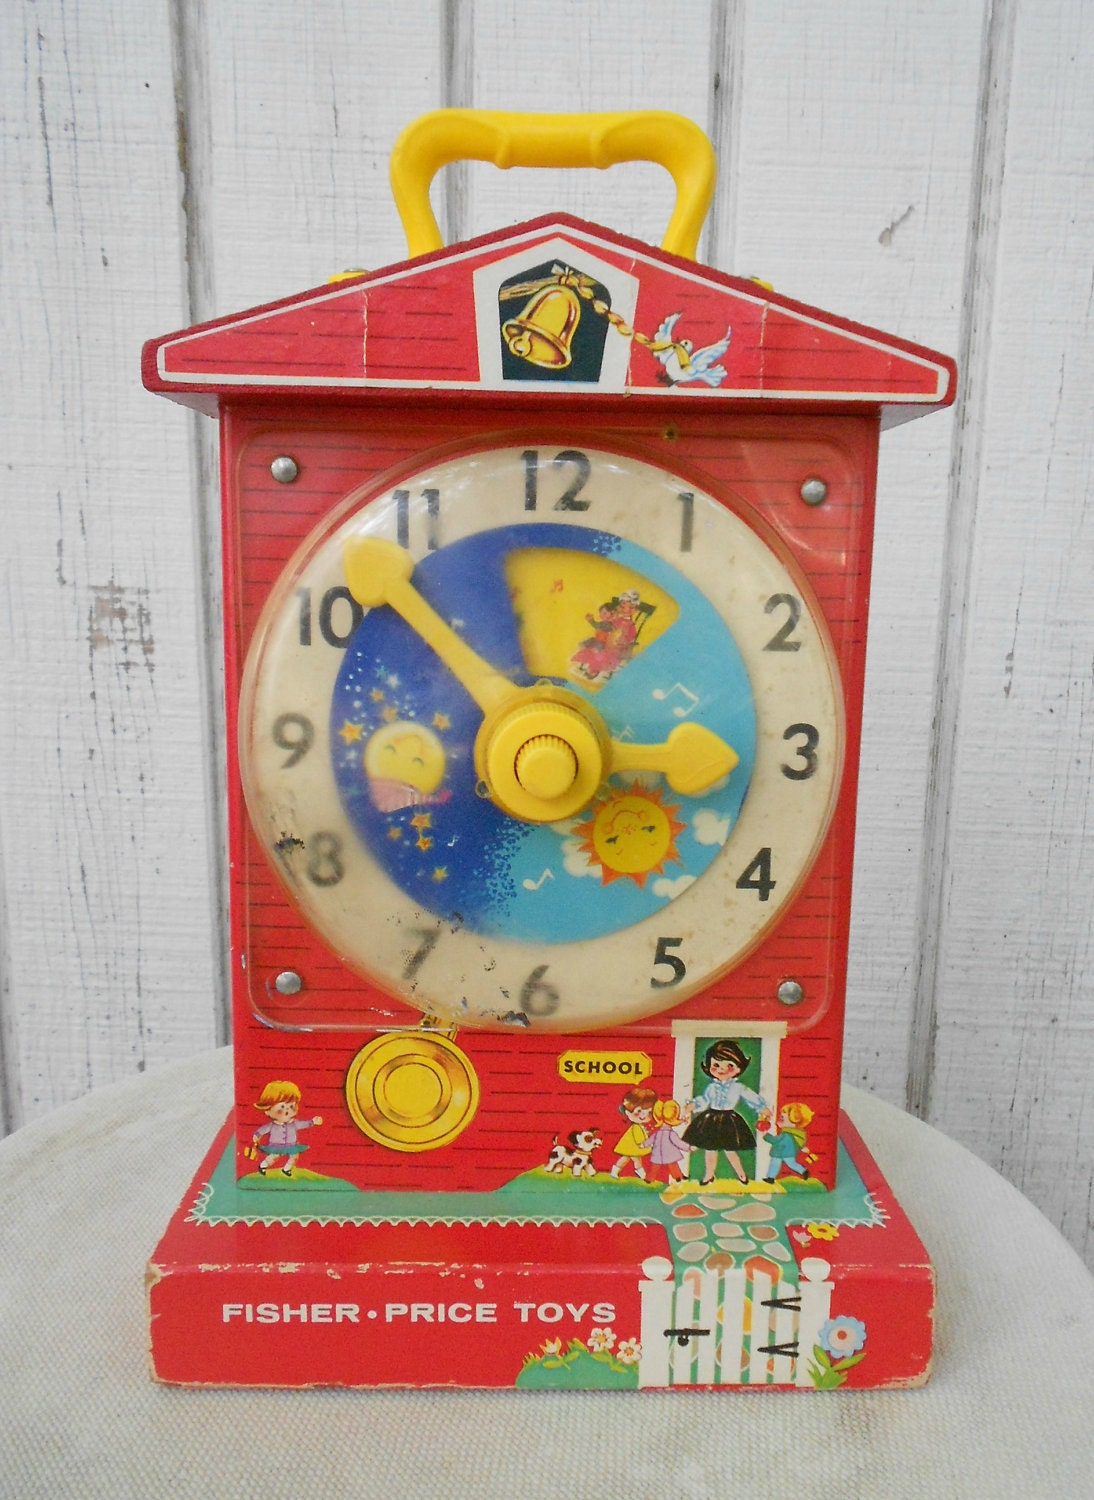 Vintage Toys From The 60s : Fisher price toy clock vintage s child teaching